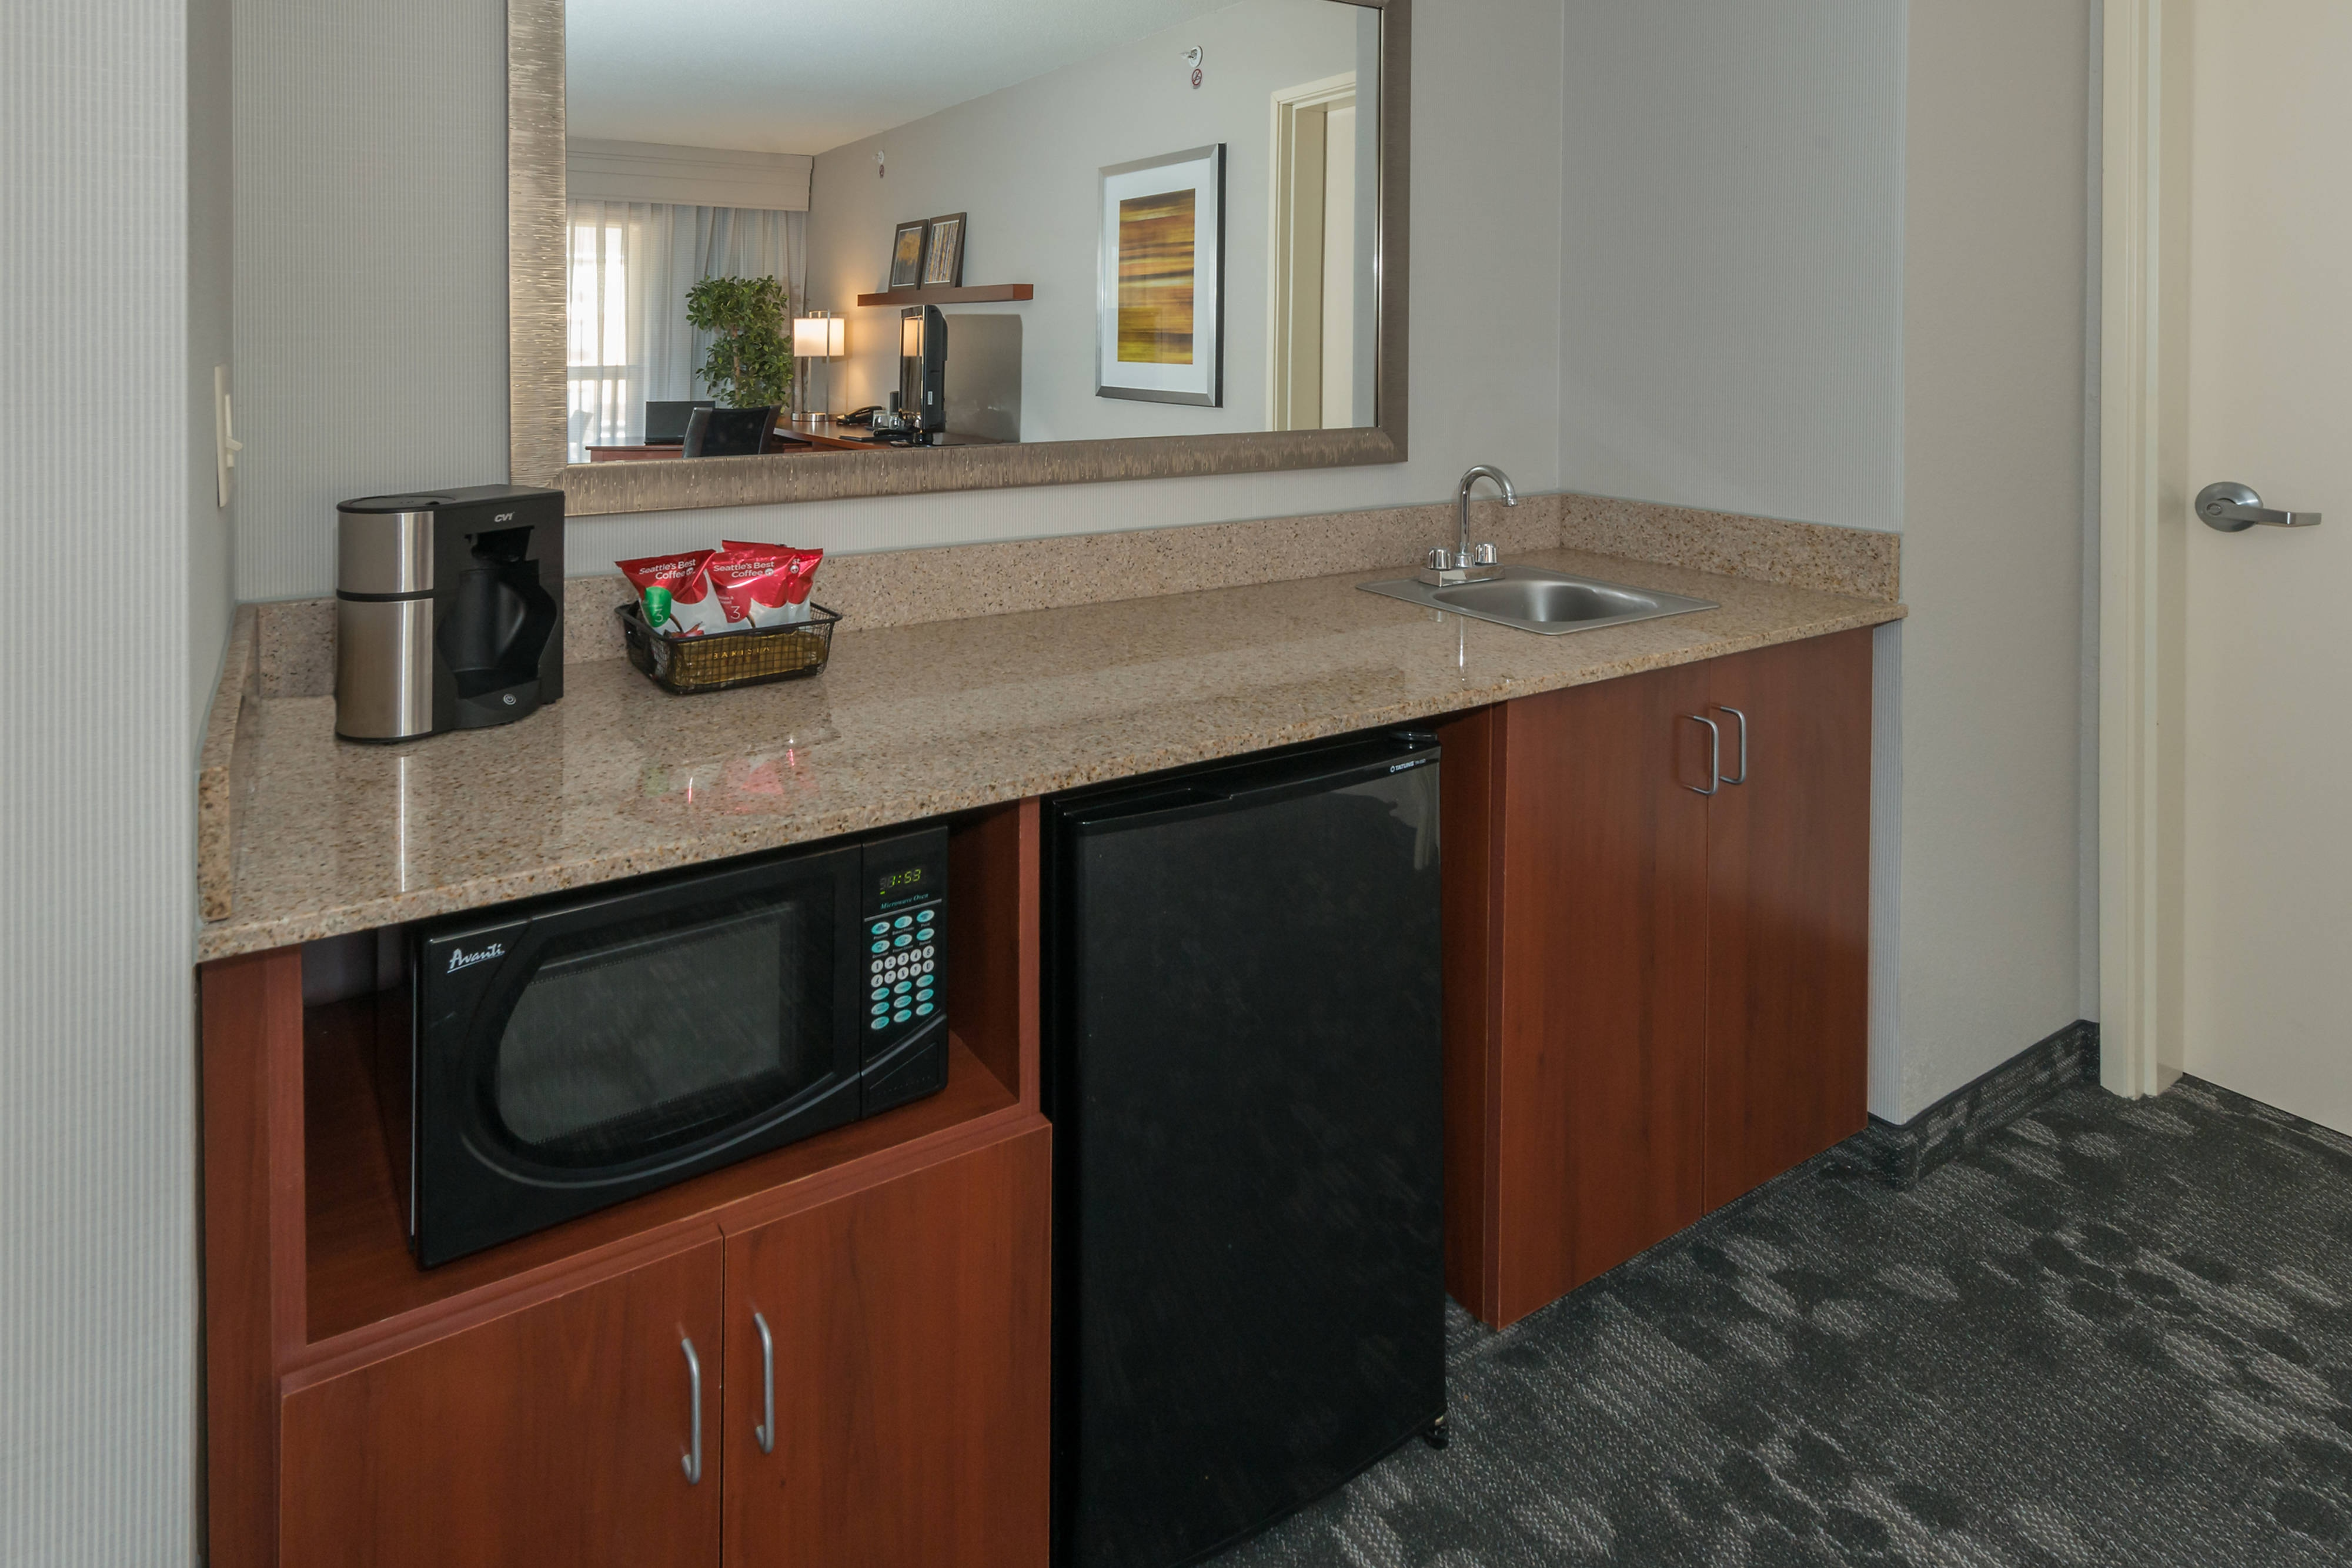 King Suite - Amenities